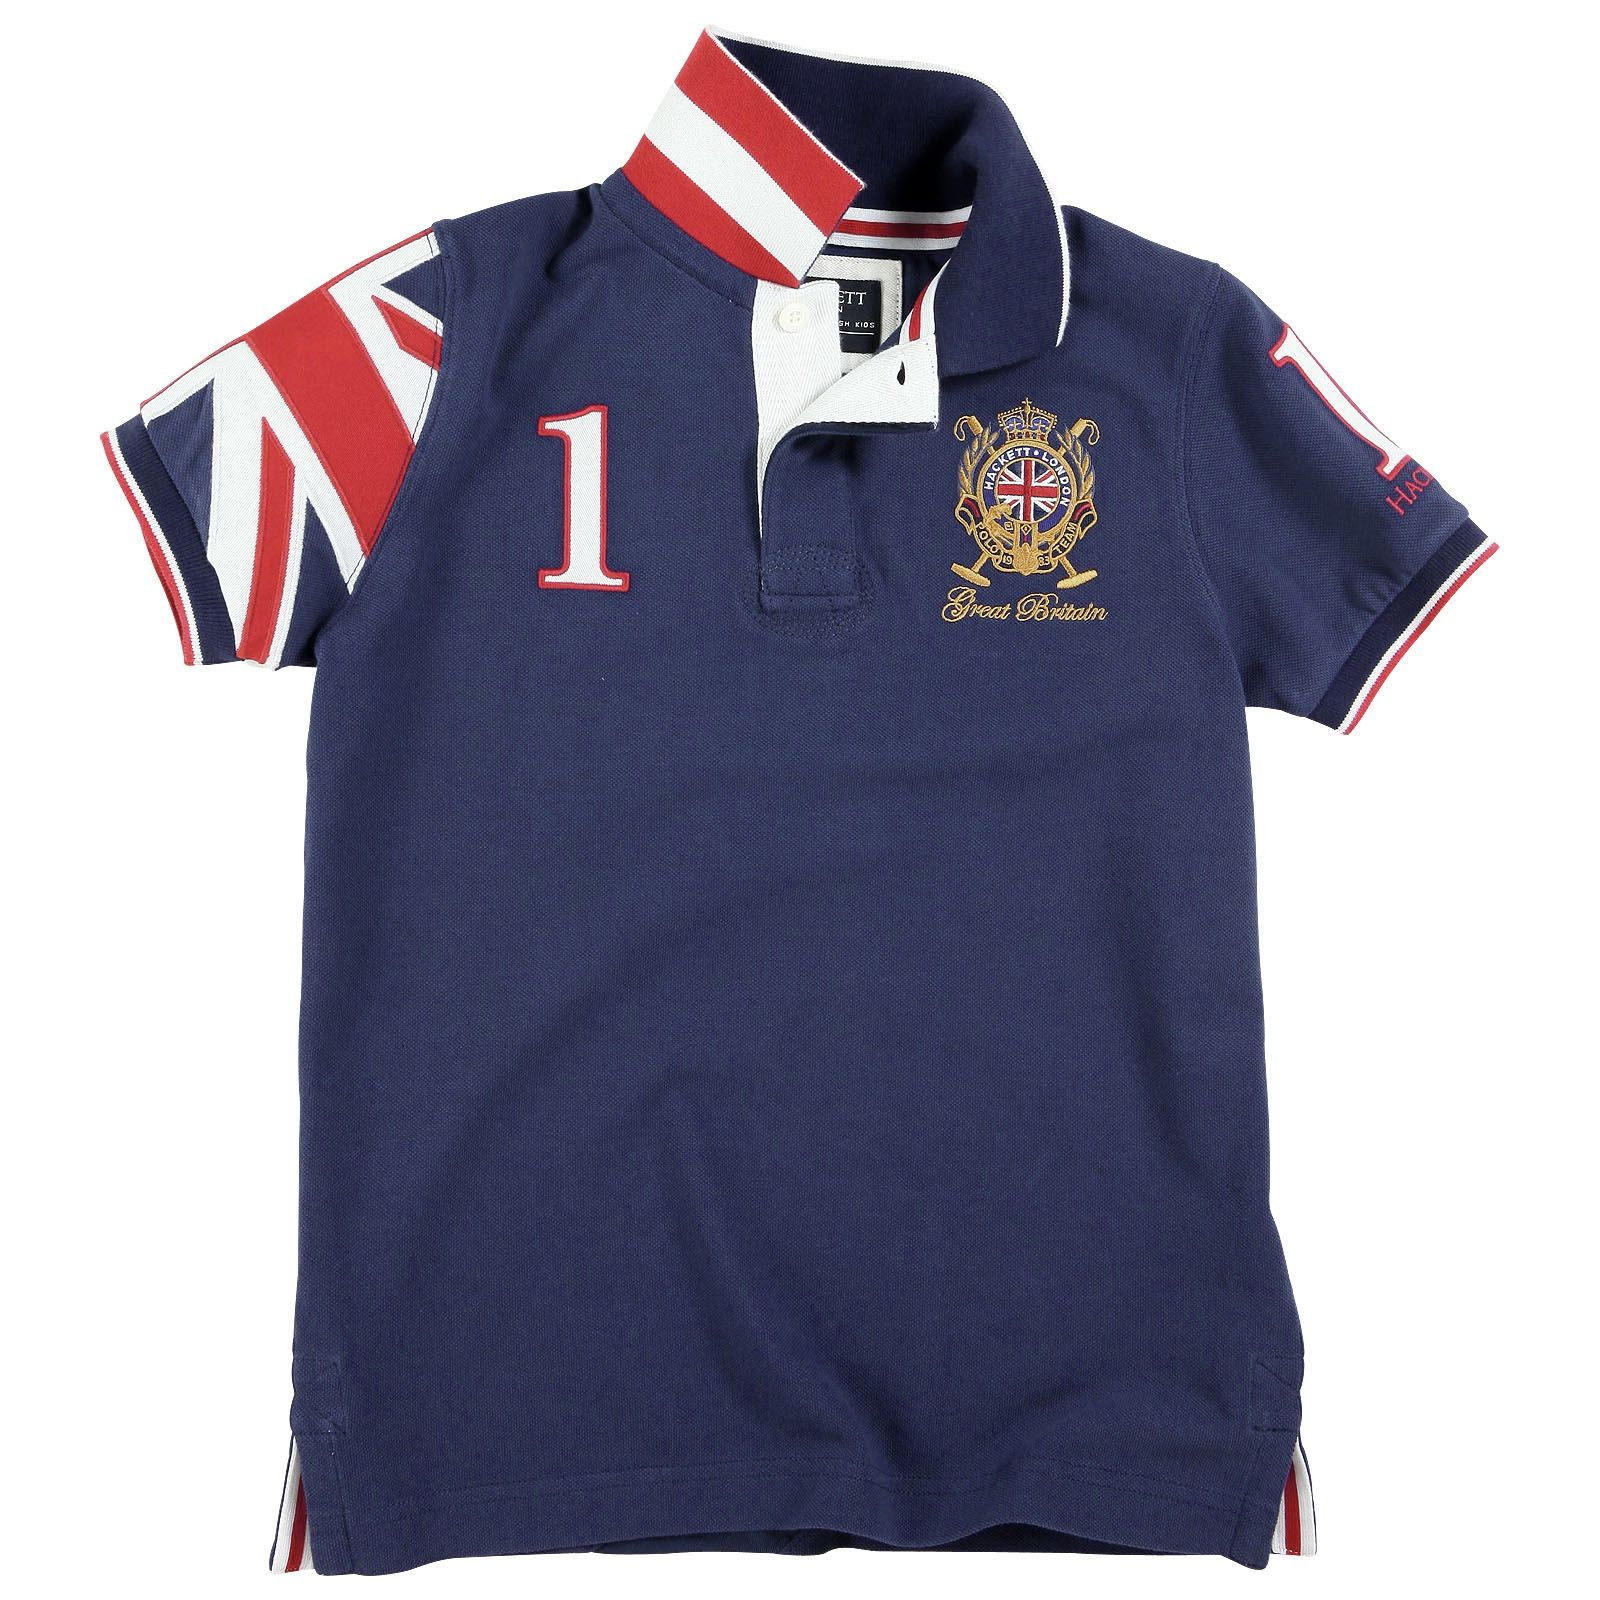 hackett polo shirts - Google Search  8336a089221